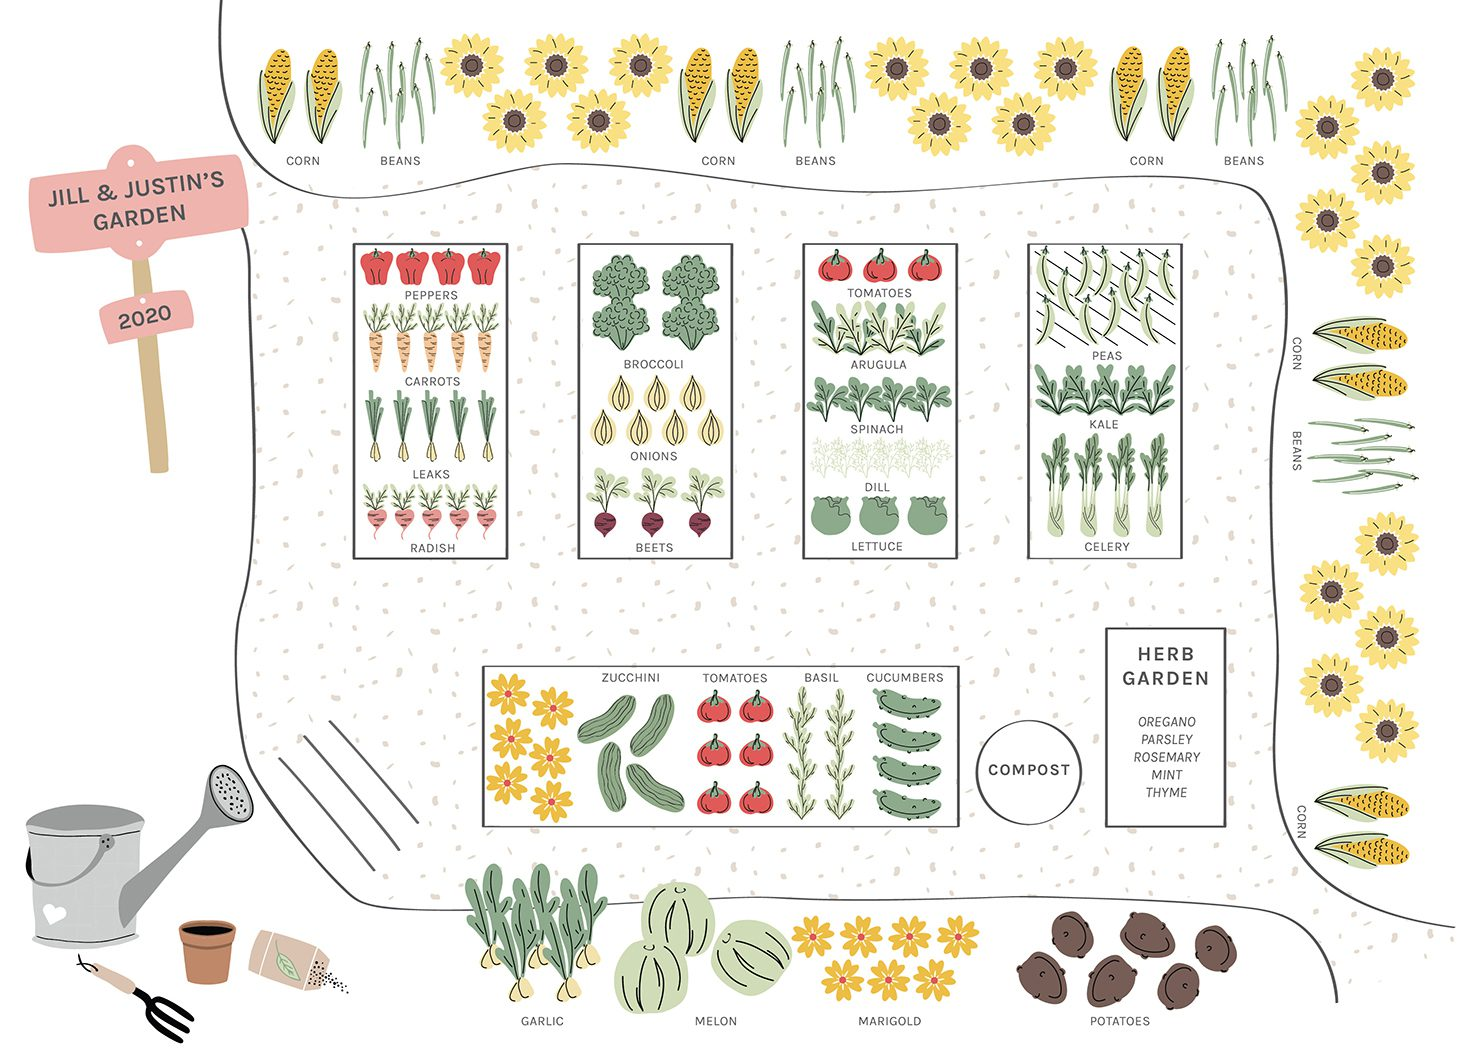 Jillian Harris Garden Layout 2020